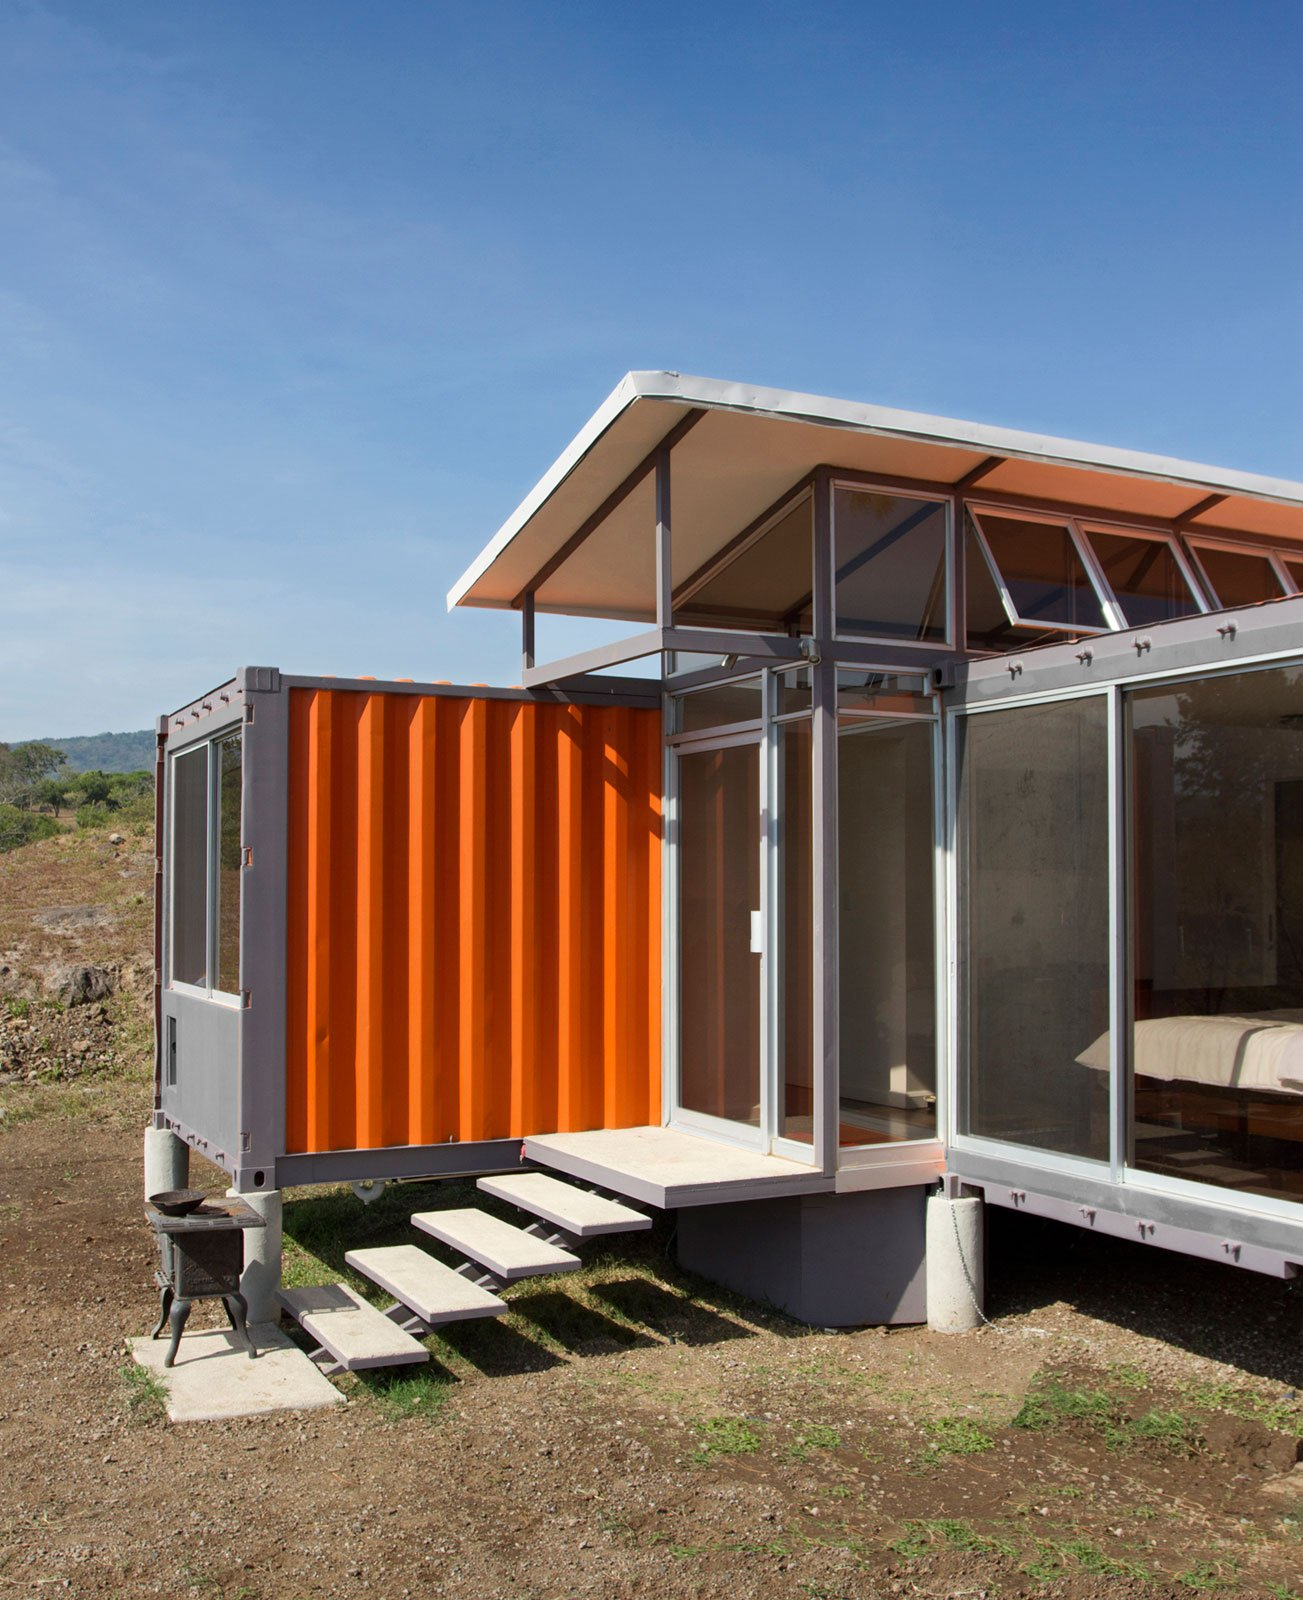 Containers of hope a low cost home by benjamin garcia saxe small house bliss - Homes made from shipping containers cost ...